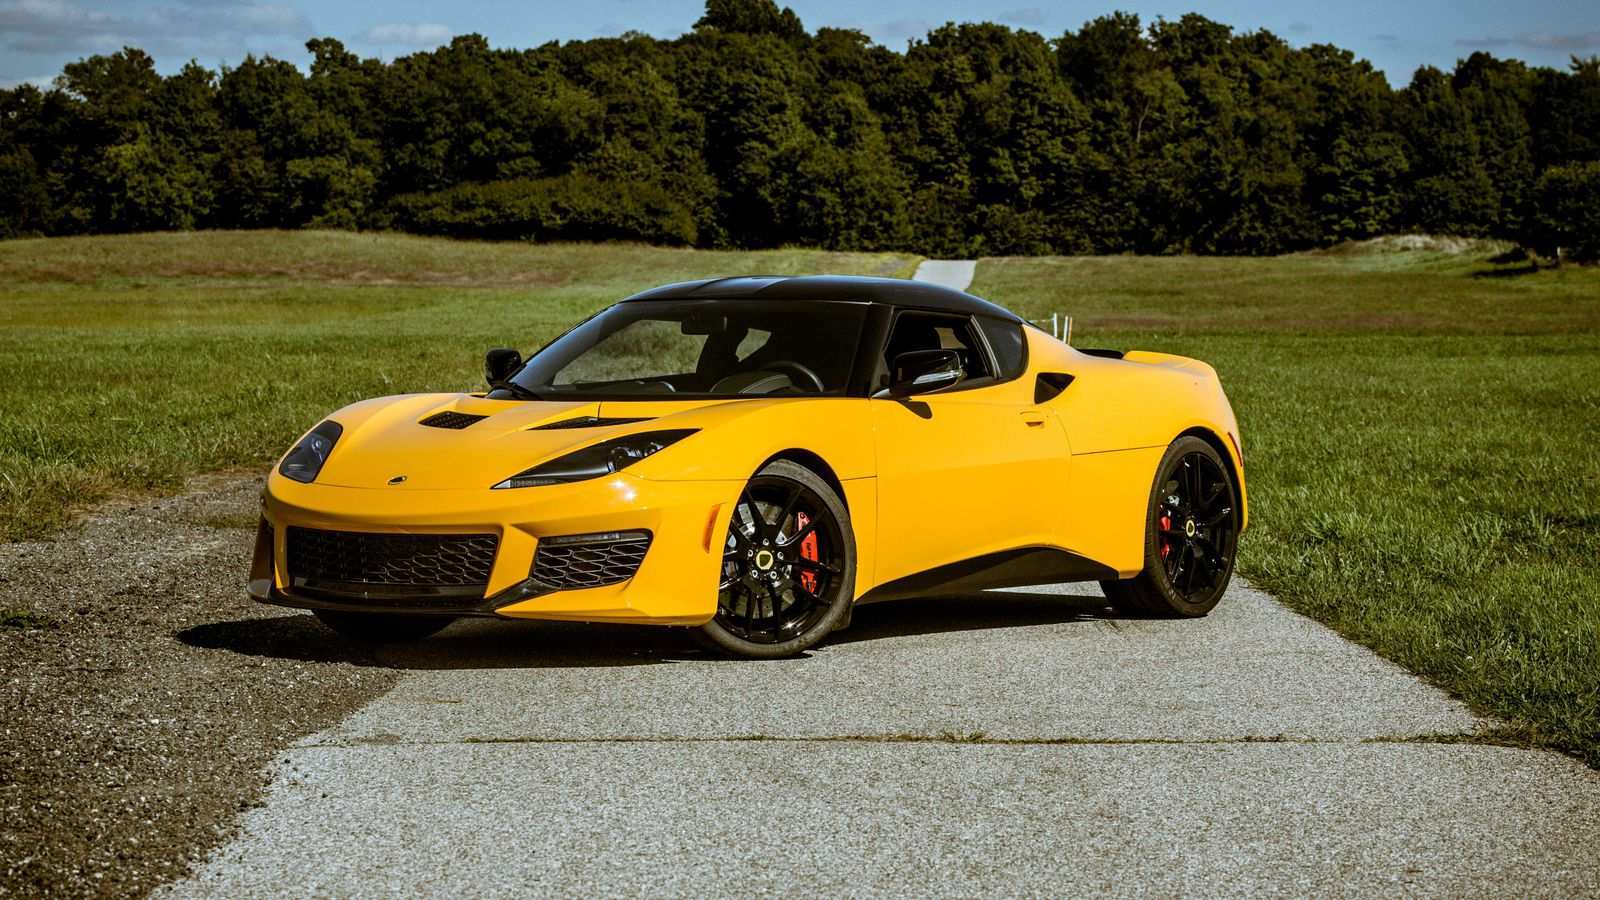 56 The 2020 The Lotus Evora Price And Release Date